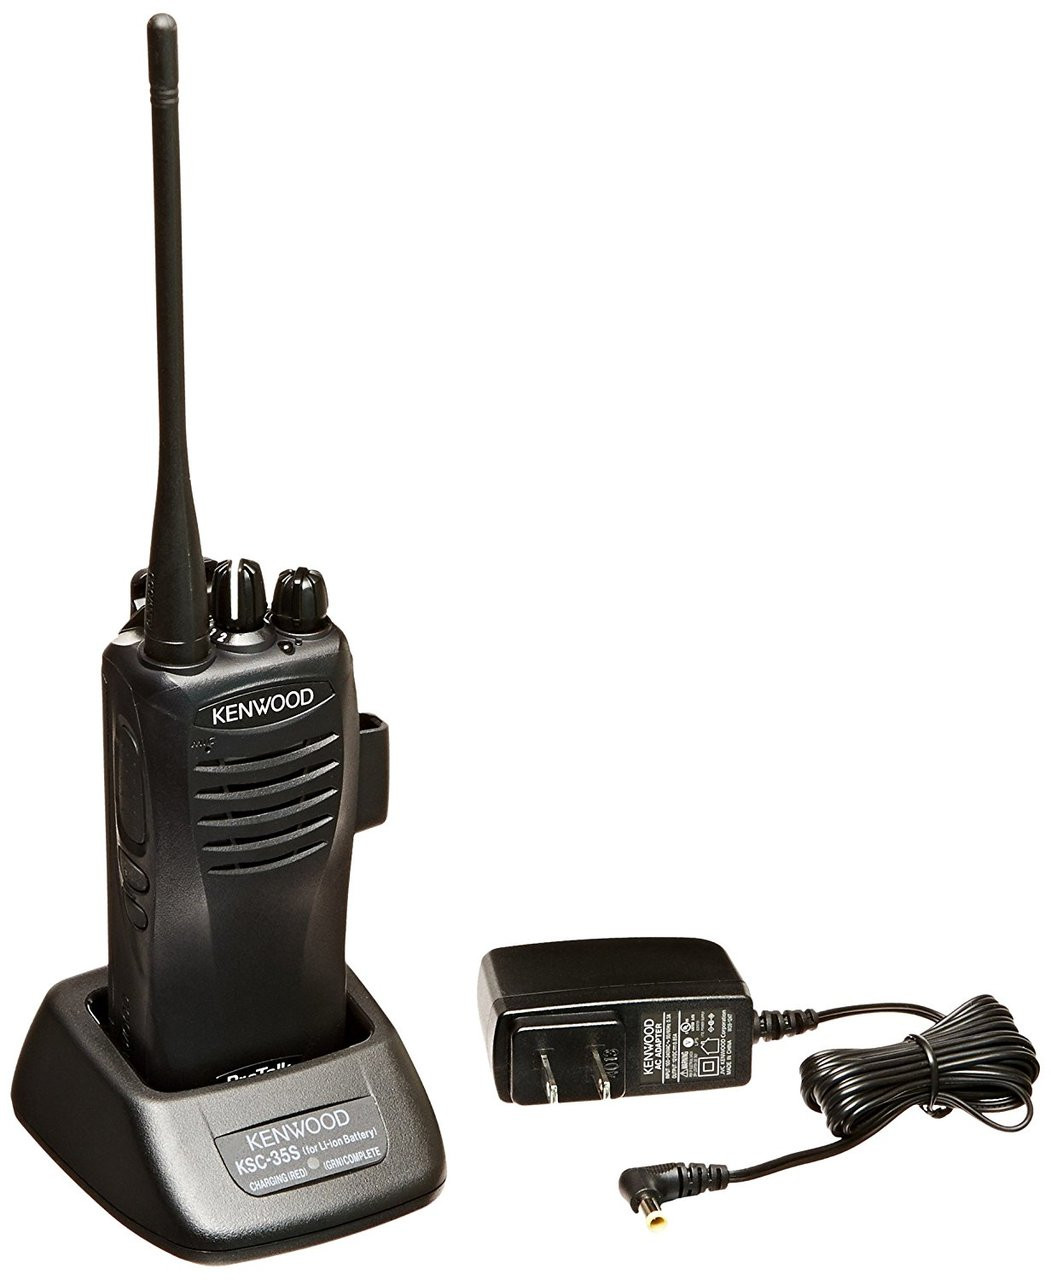 Kenwood TK3402U16P 5 Watt 16 Channel UHF Two Way Radio